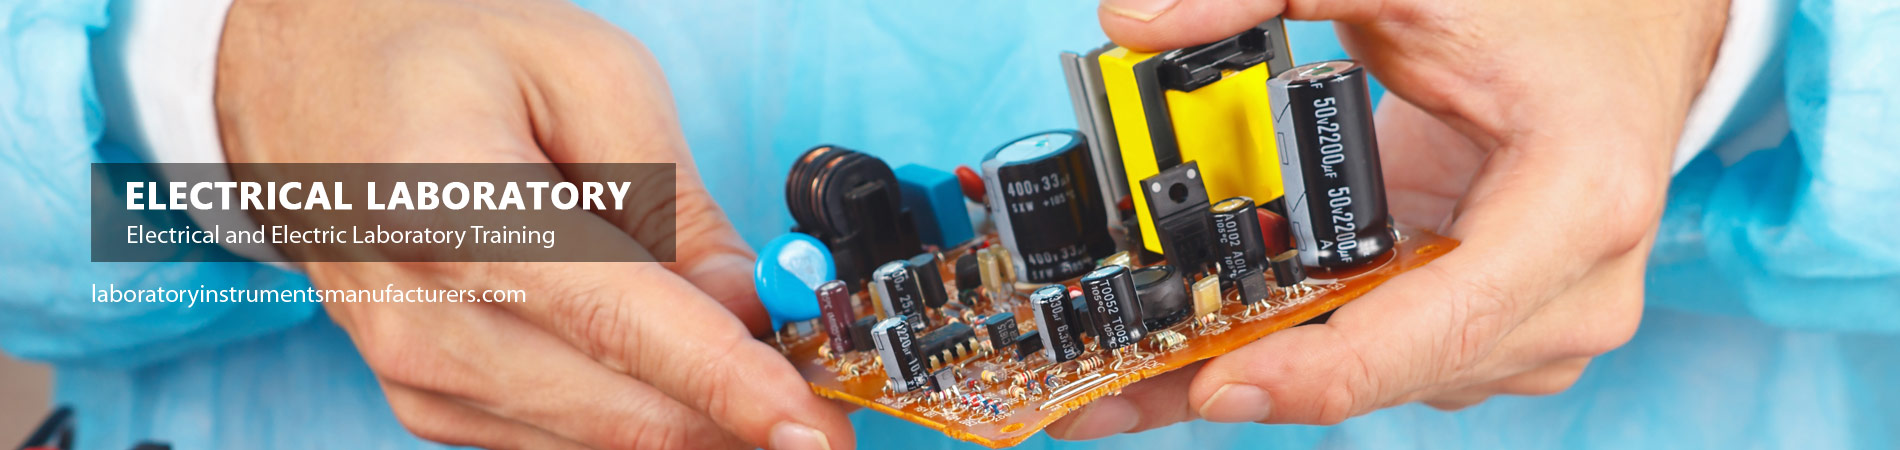 Civil Engineering Lab Equipment Manufacturers Electronic Circuits Laboratory Technical Education Equipments